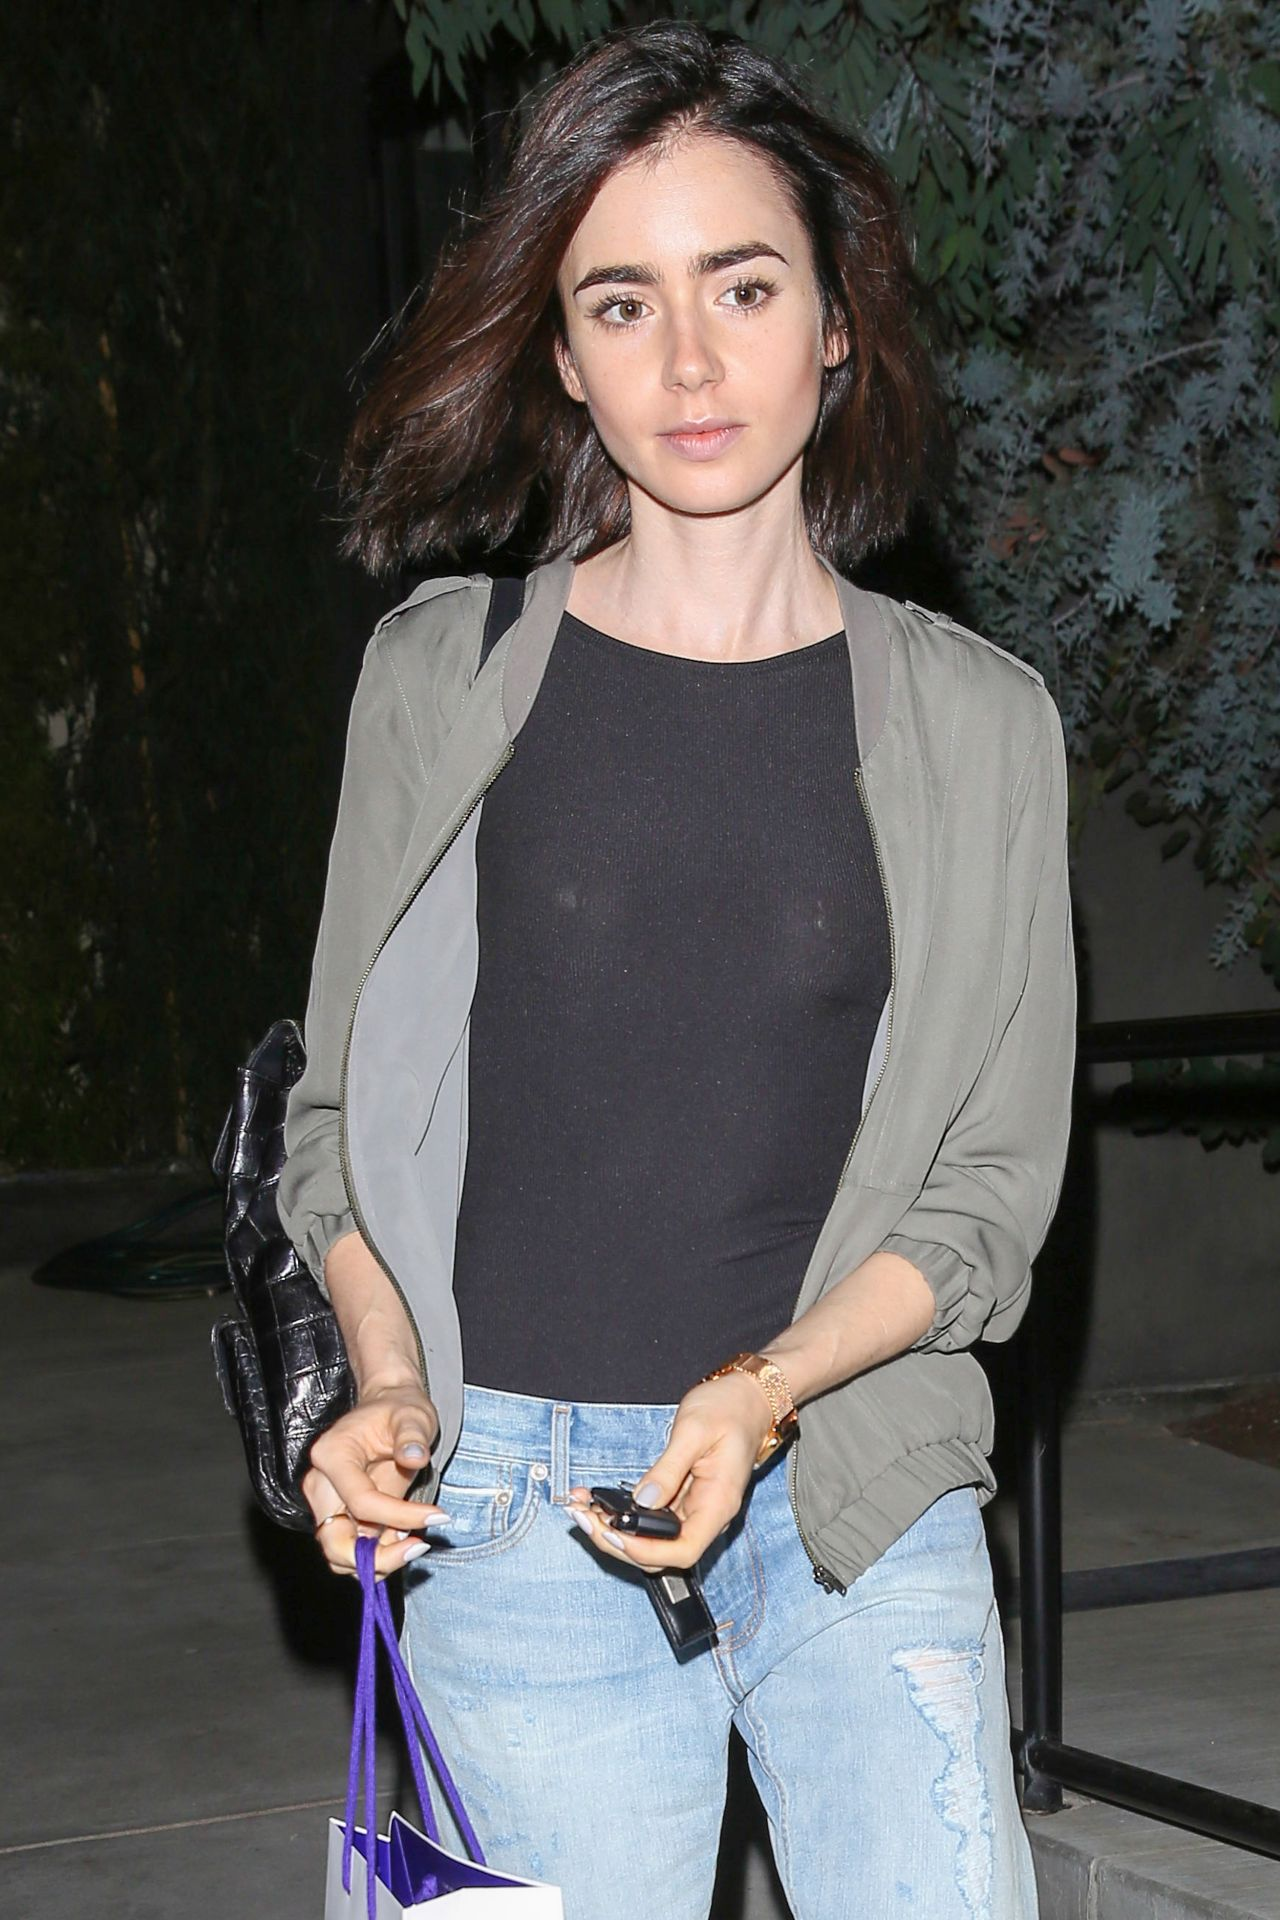 Lily Collins Leaving The Salon With Her Normal Hair